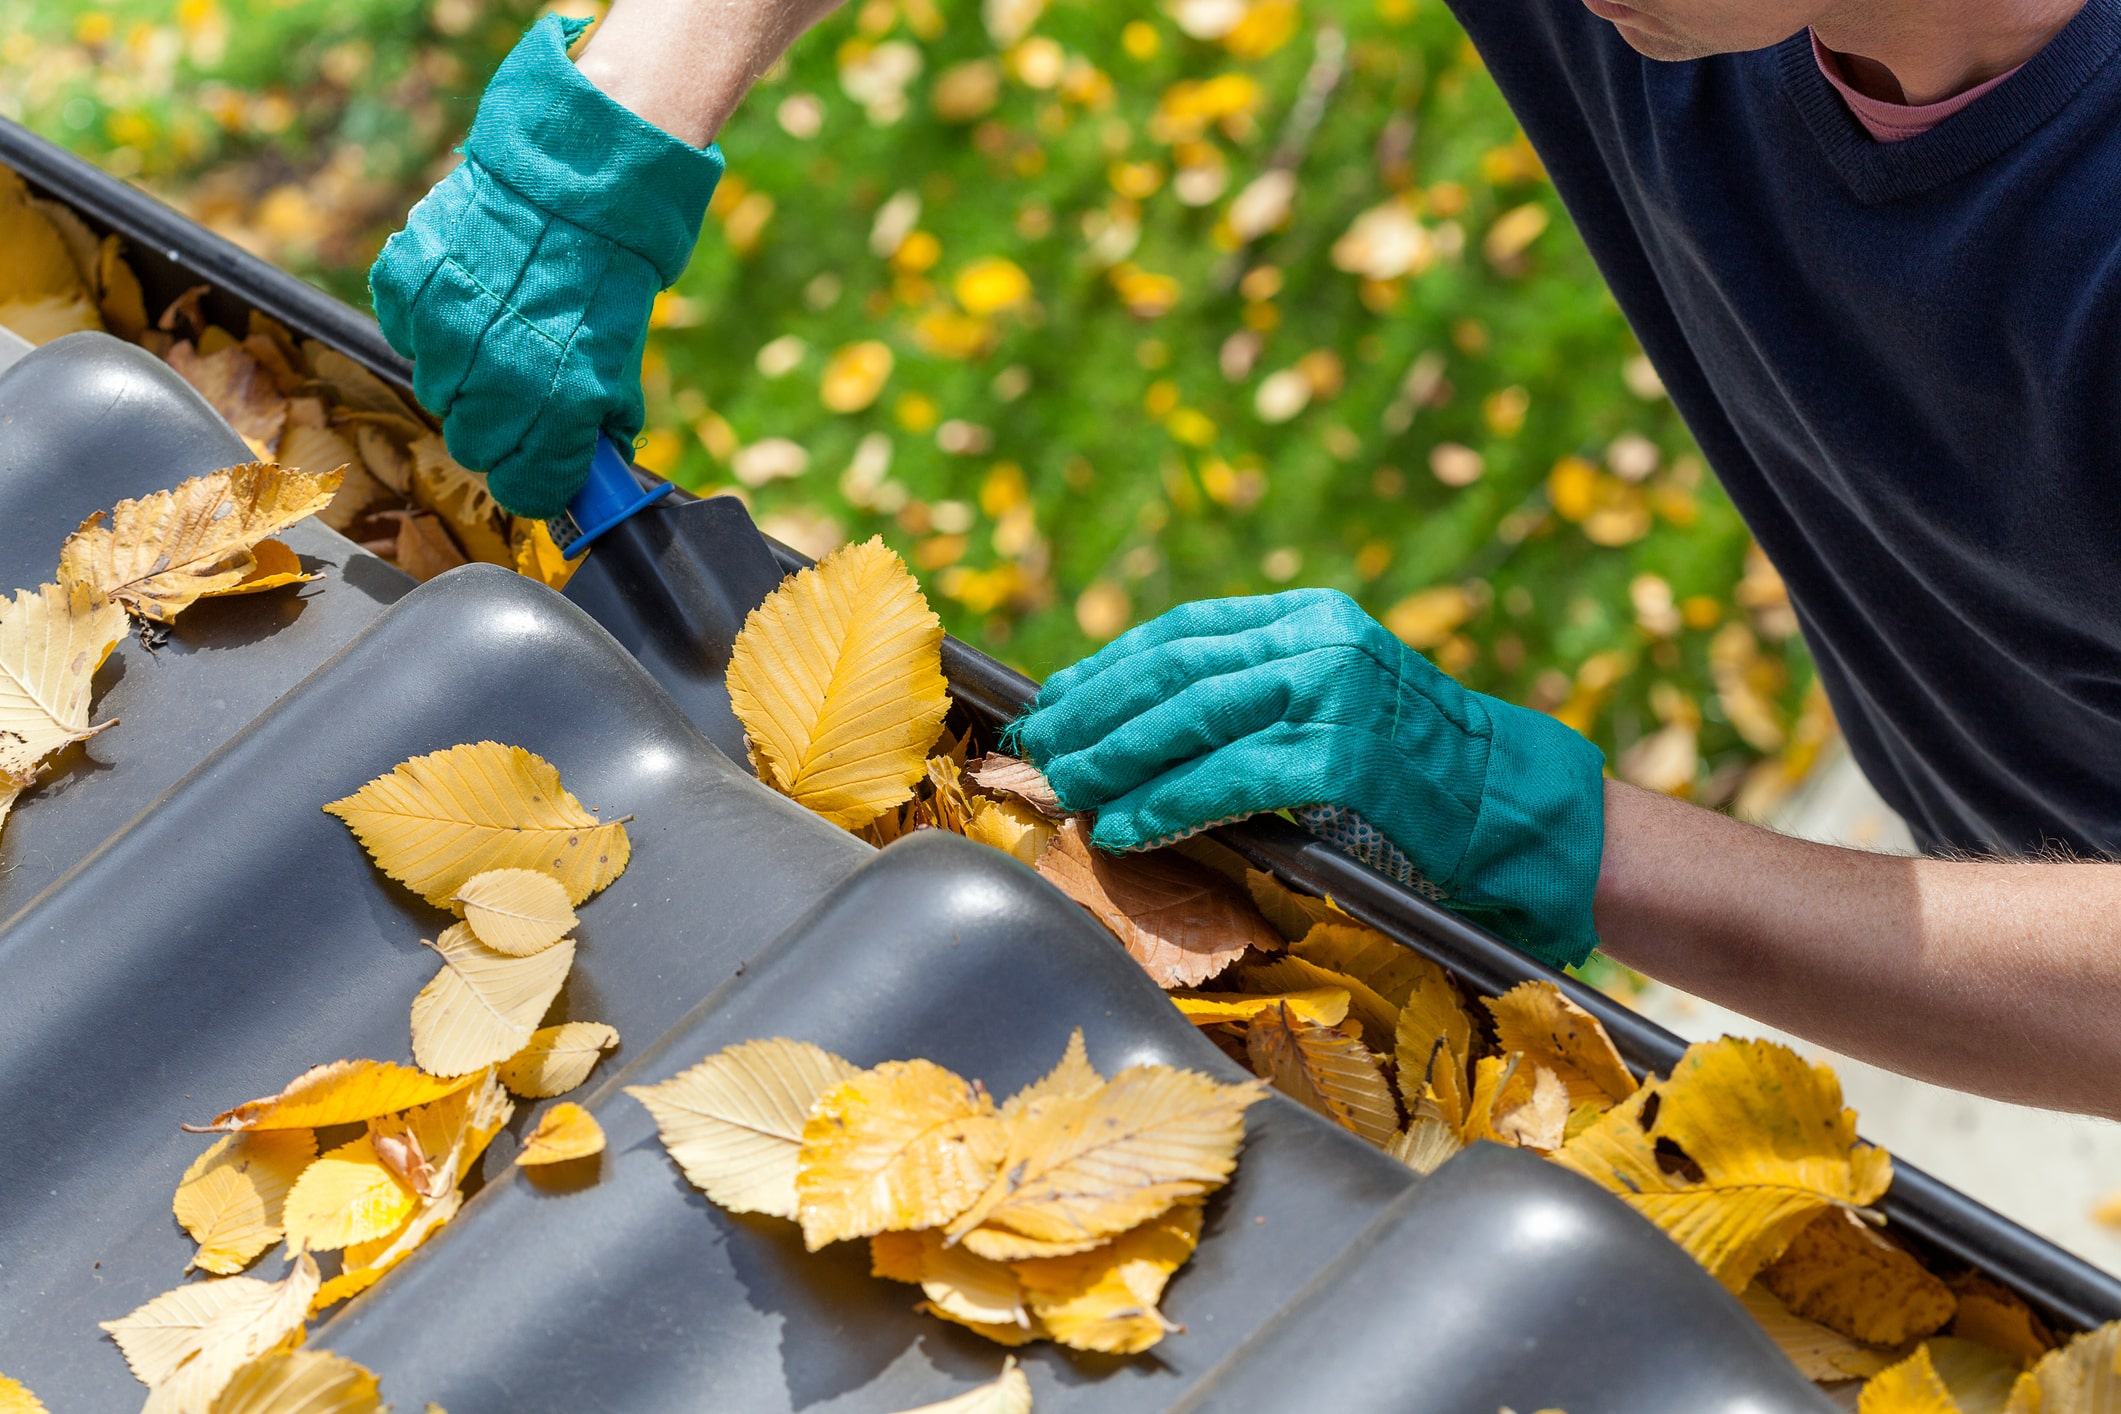 Scooping Leaves from the Gutter